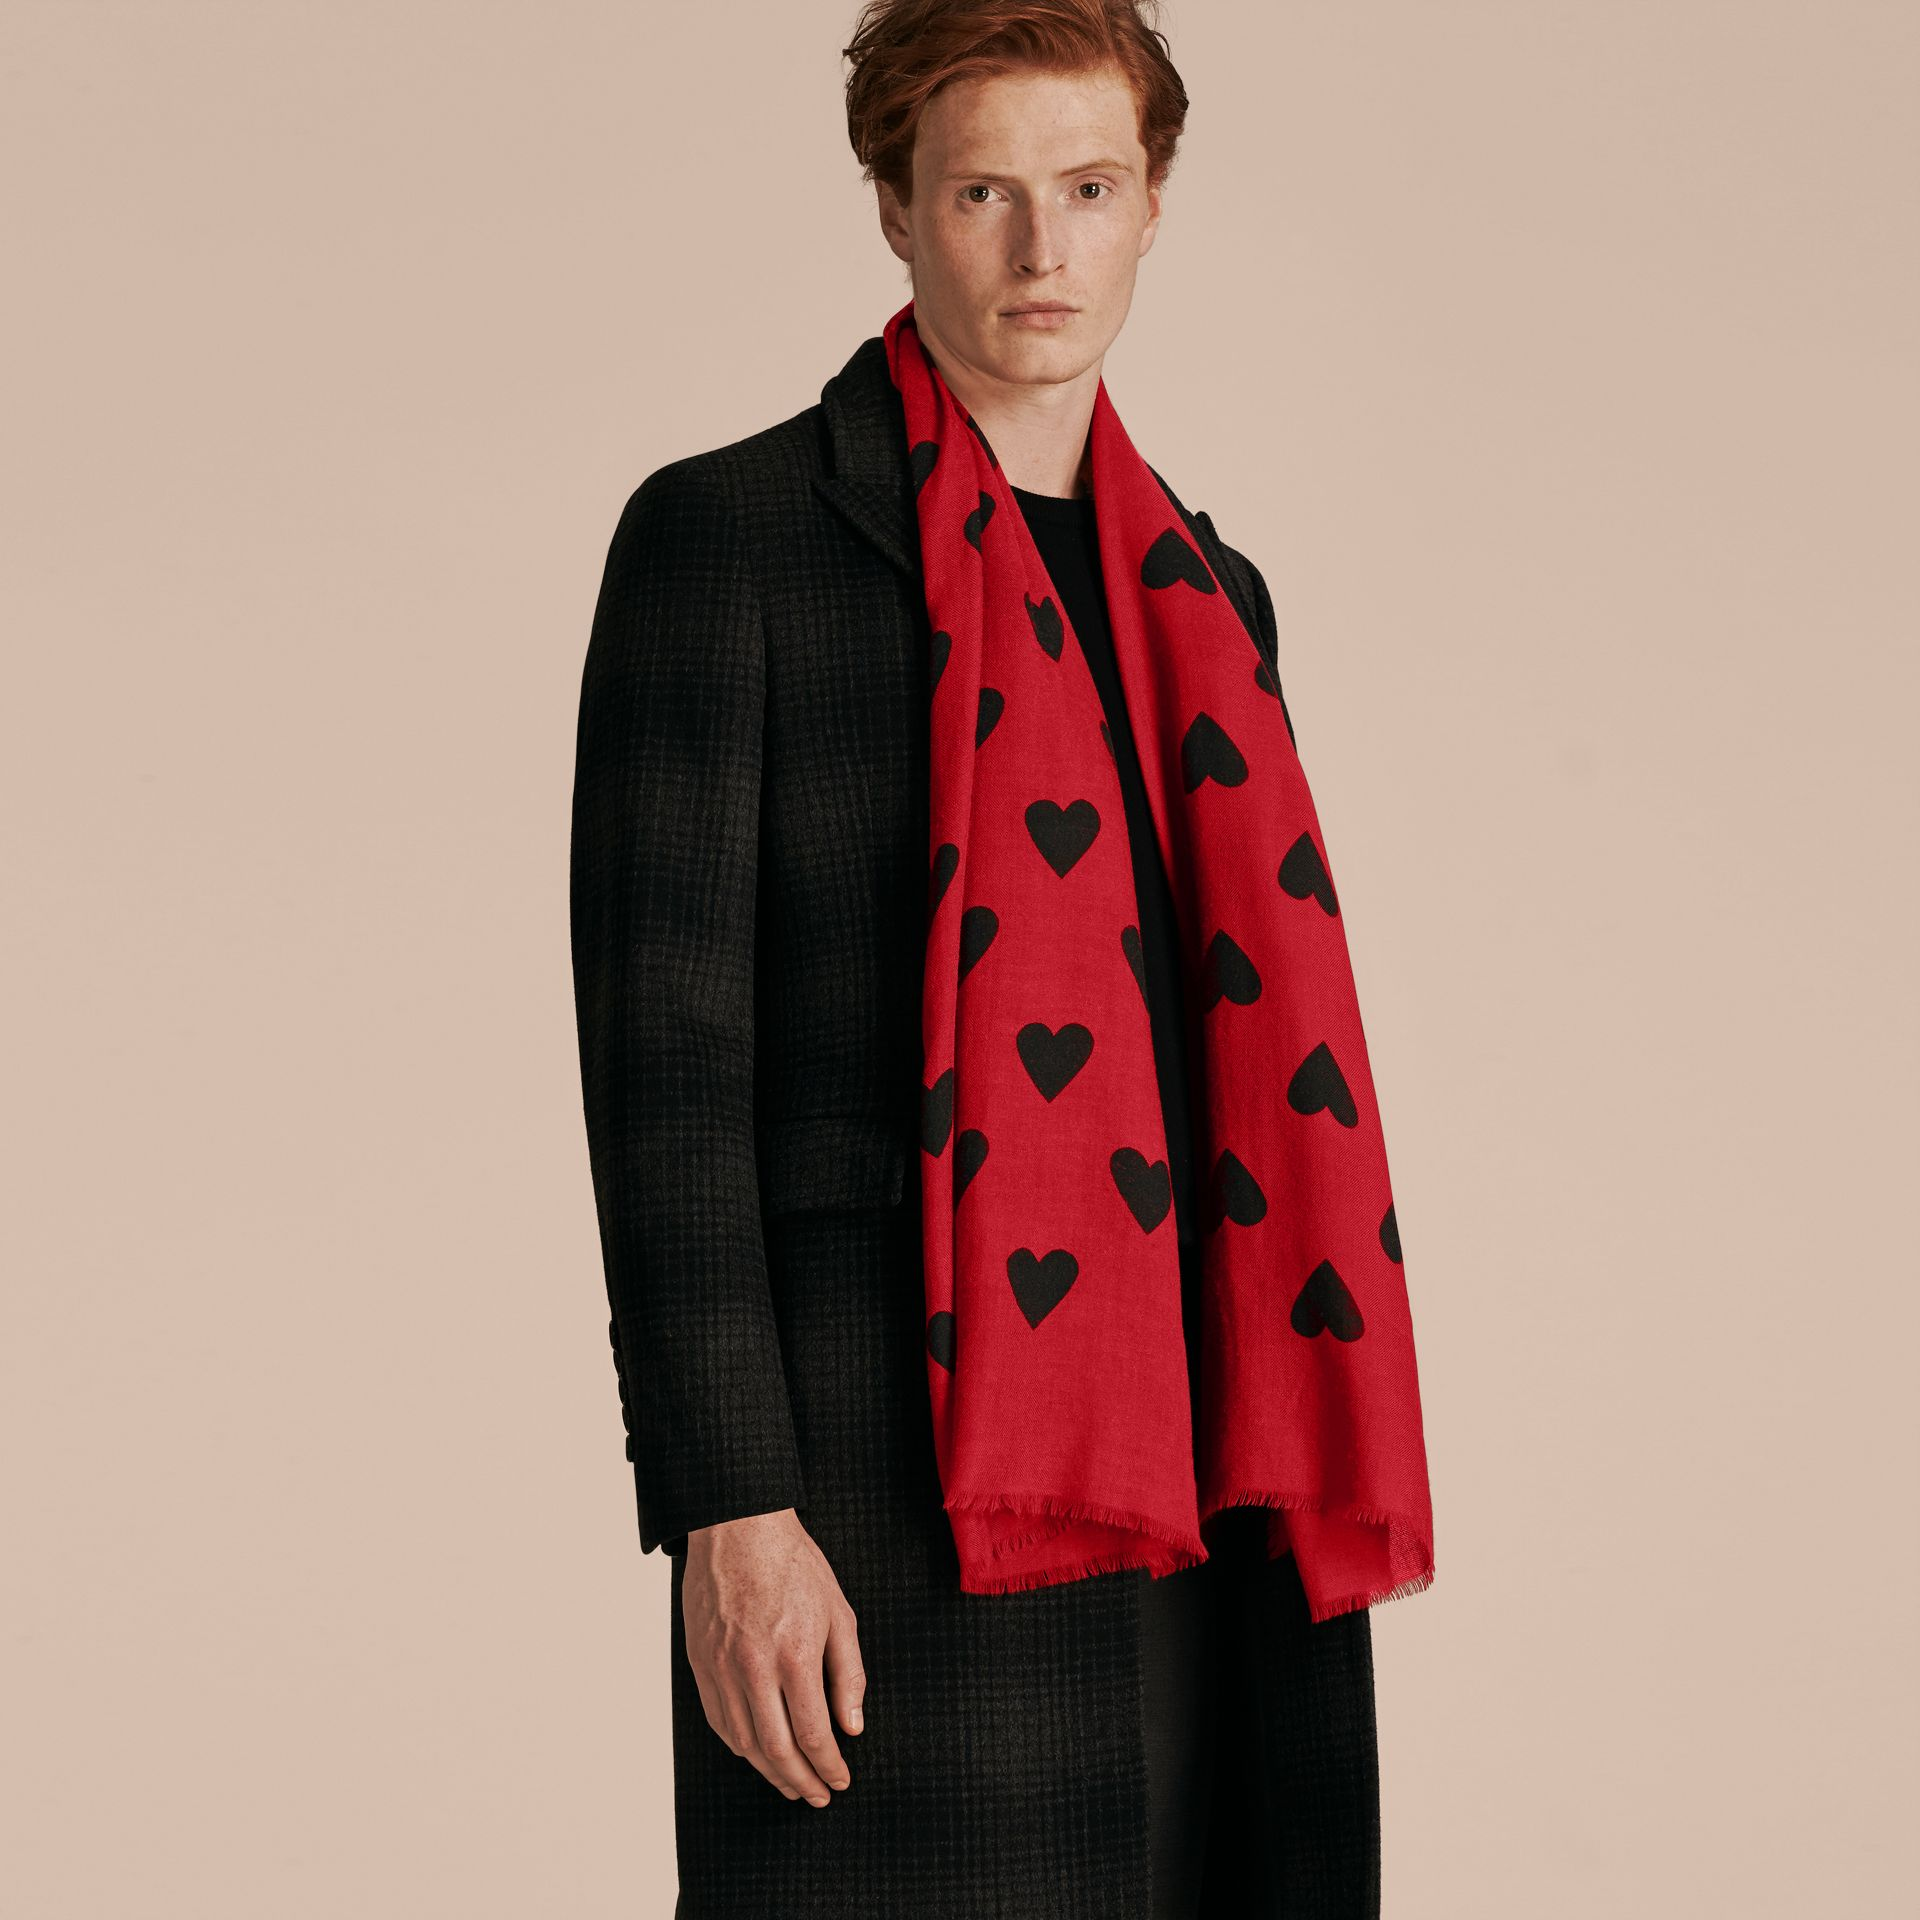 Parade red/black The Lightweight Cashmere Scarf in Heart Print Parade Red/black - gallery image 4